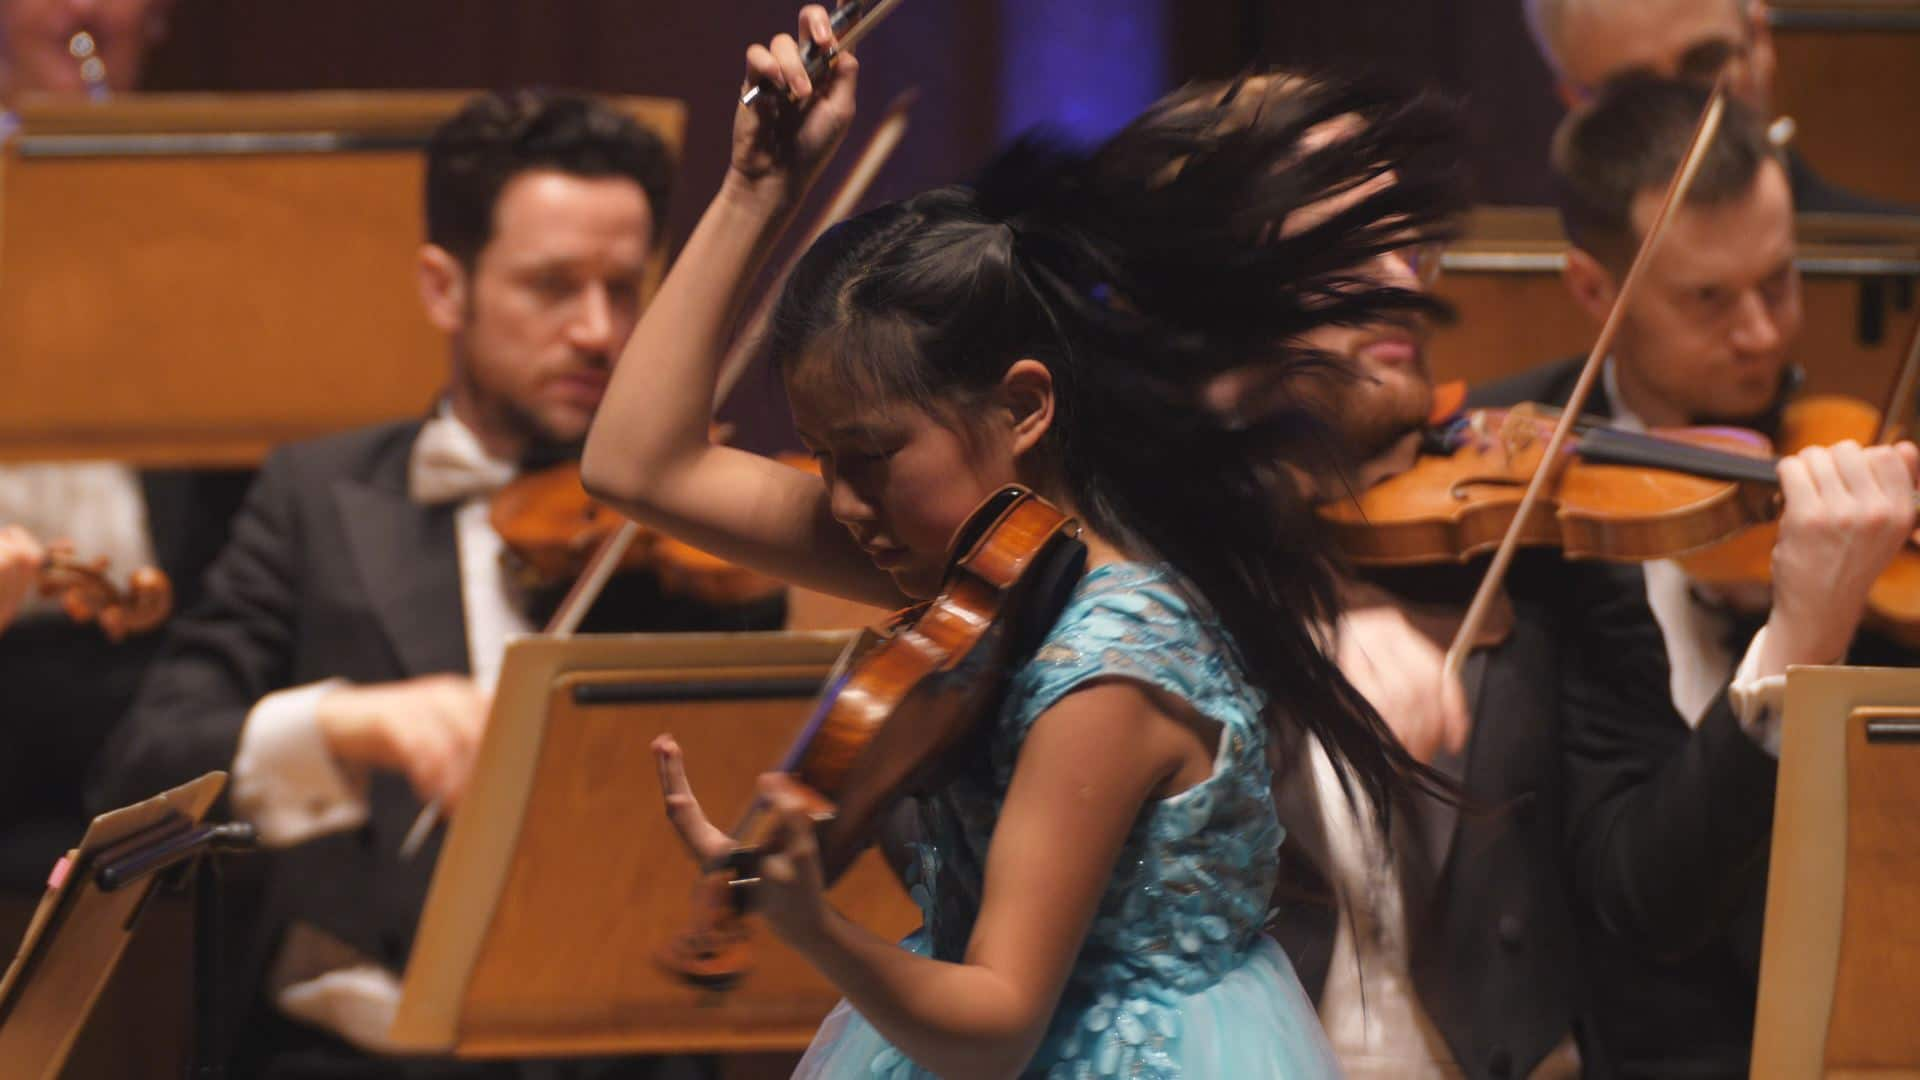 London orchestra hires artist in residence, aged 14